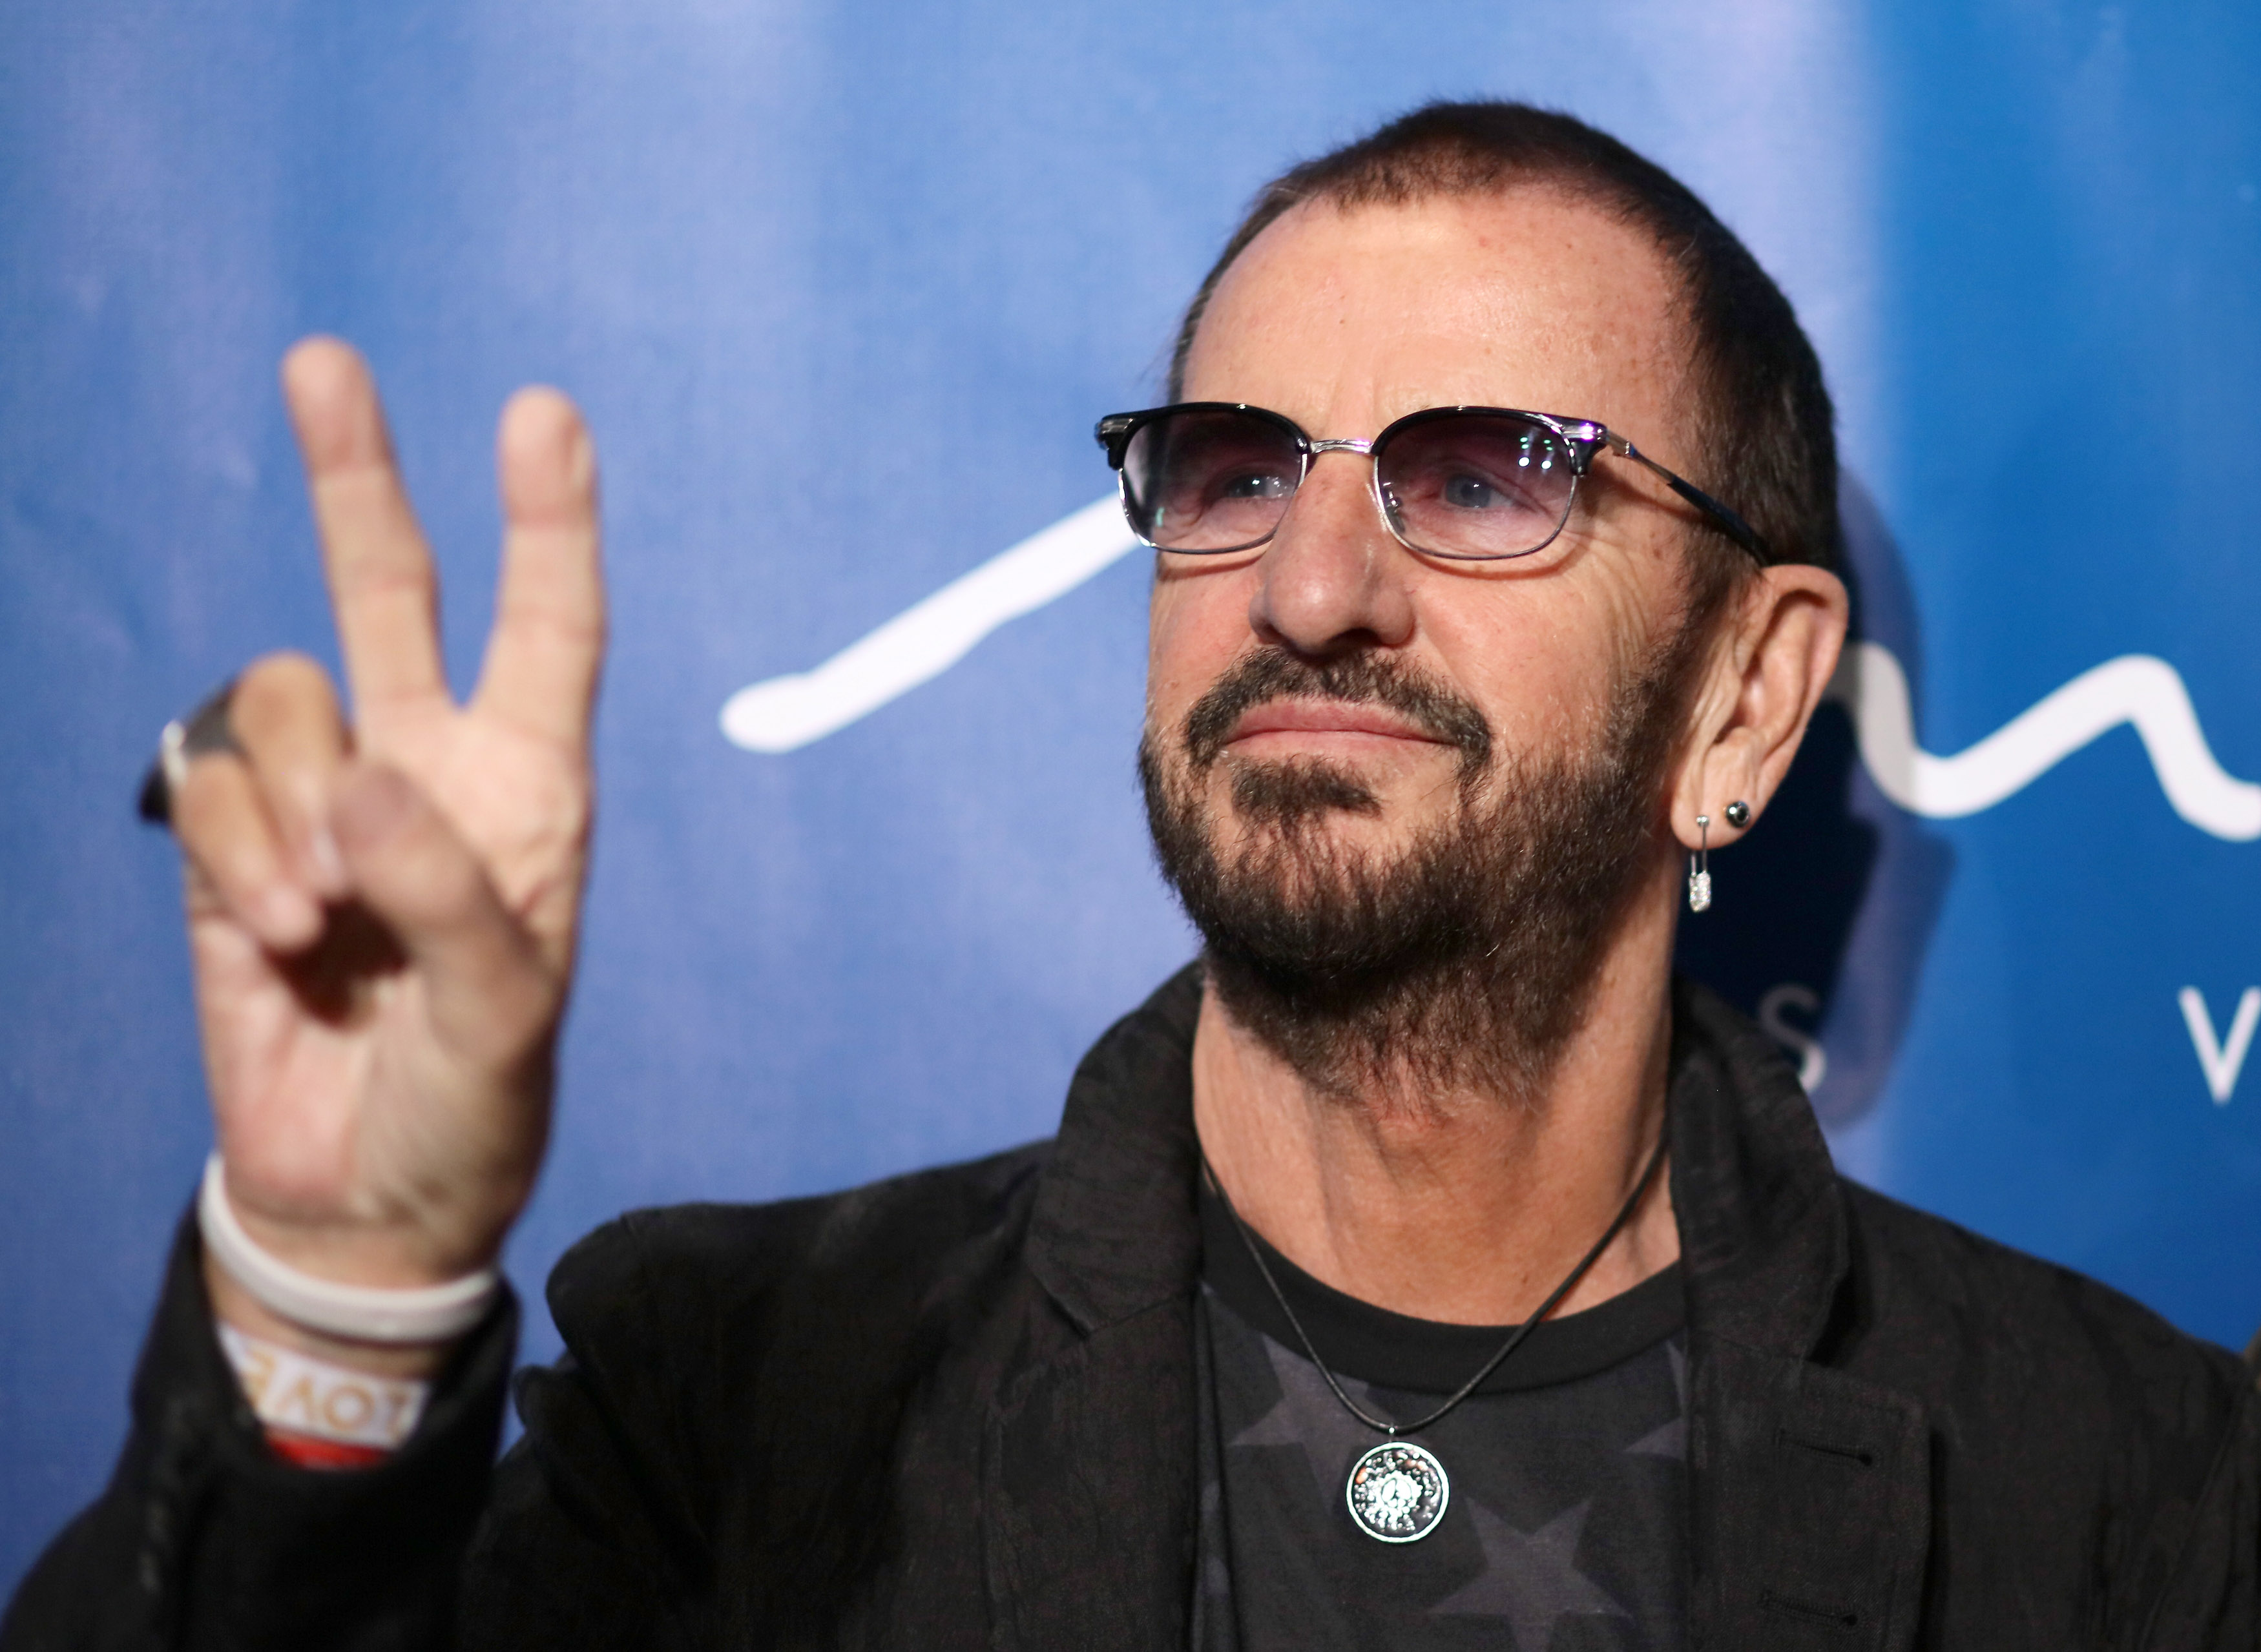 LAS VEGAS, NV - JULY 14: Ringo Starr attends the 10th anniversary celebration of 'The Beatles LOVE by Cirque du Soleil' at Th